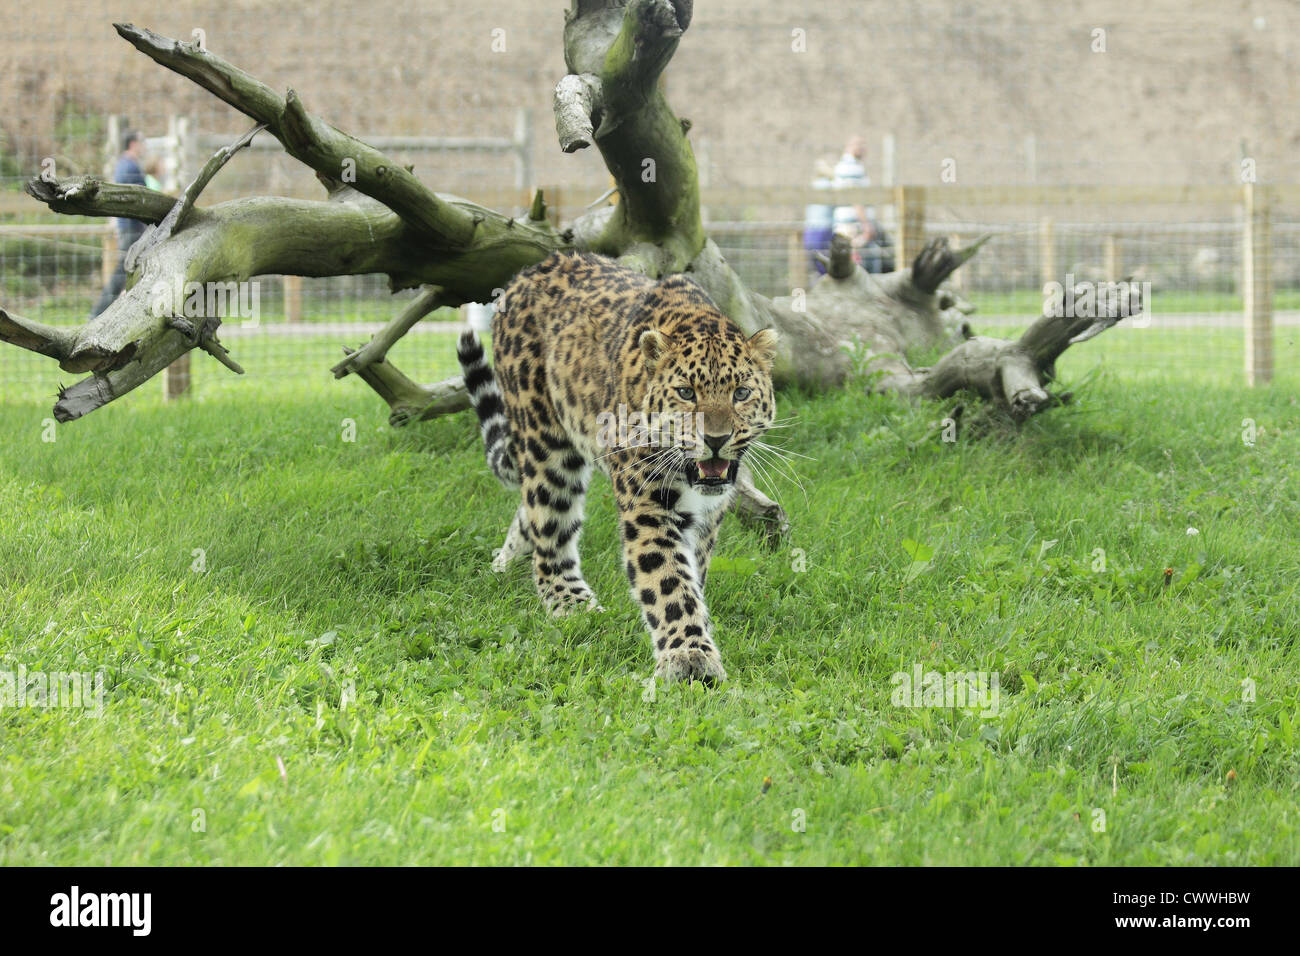 Amur leopard baring its teeth and walking towards the camera, in front of dead tree. - Stock Image